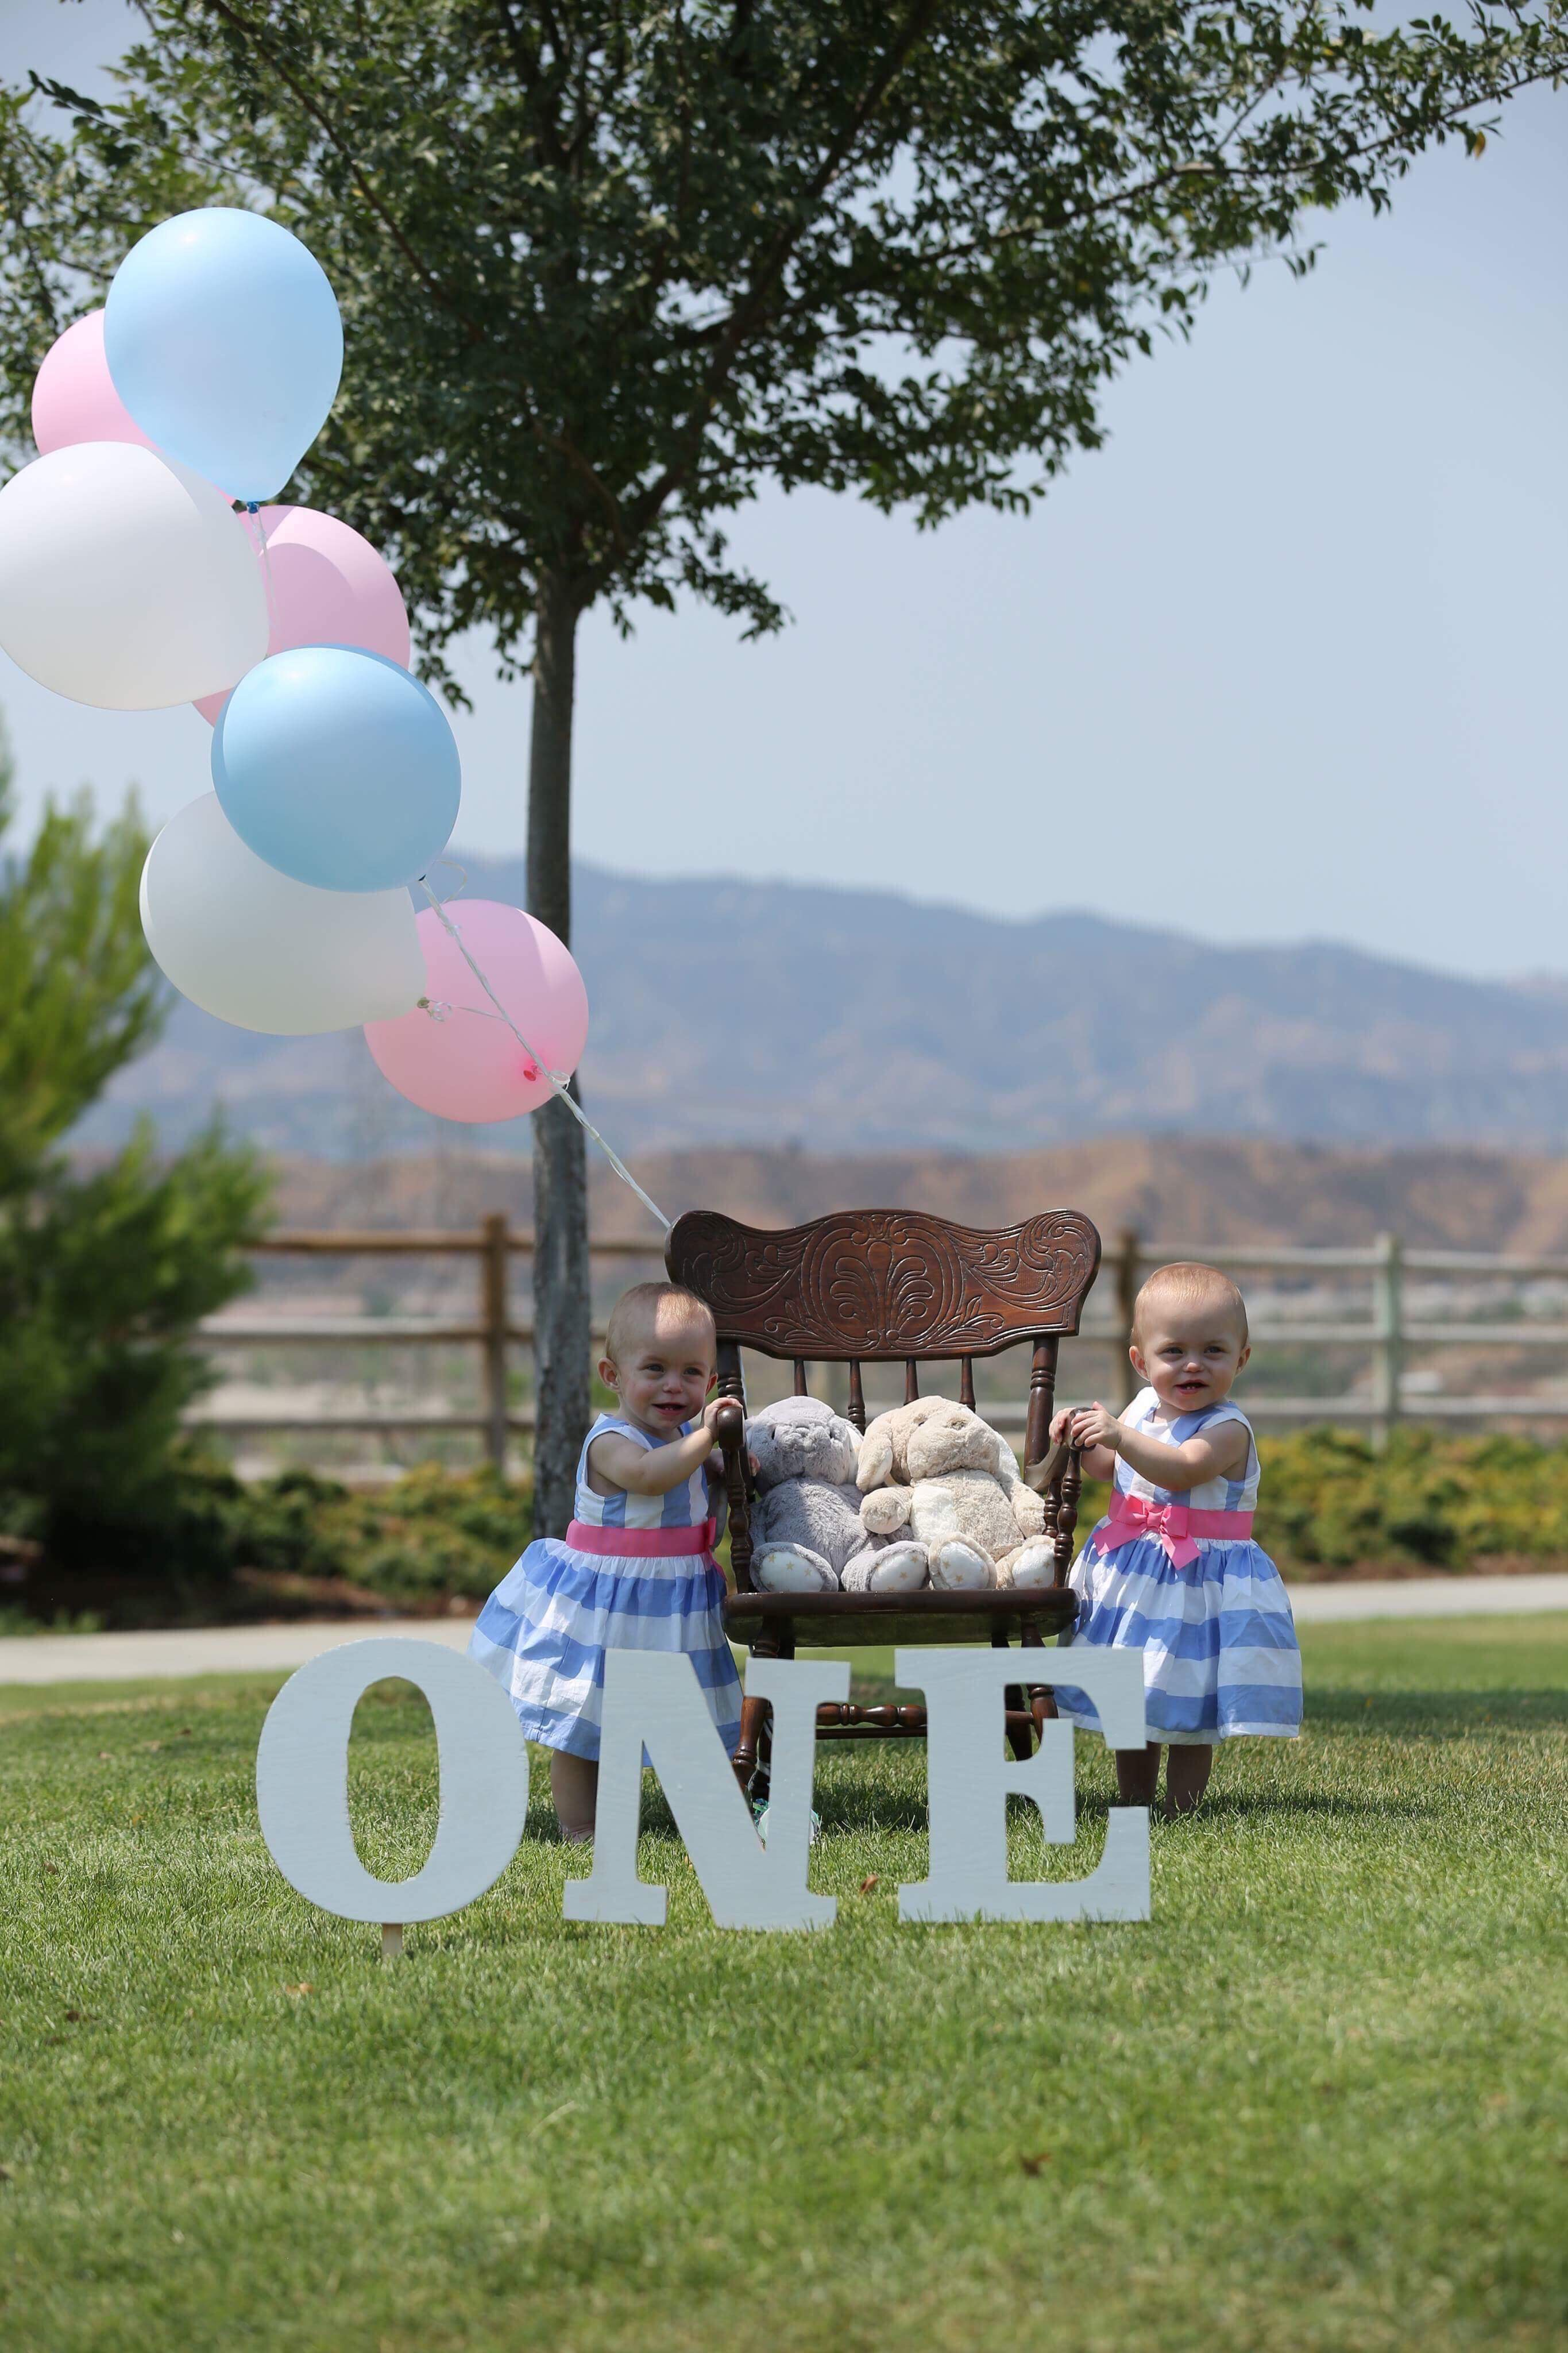 Sarah and Hannah Evans celebrating their first birthday. They were born prematurely and spent the first few months of their lives at the UCLA hospital.